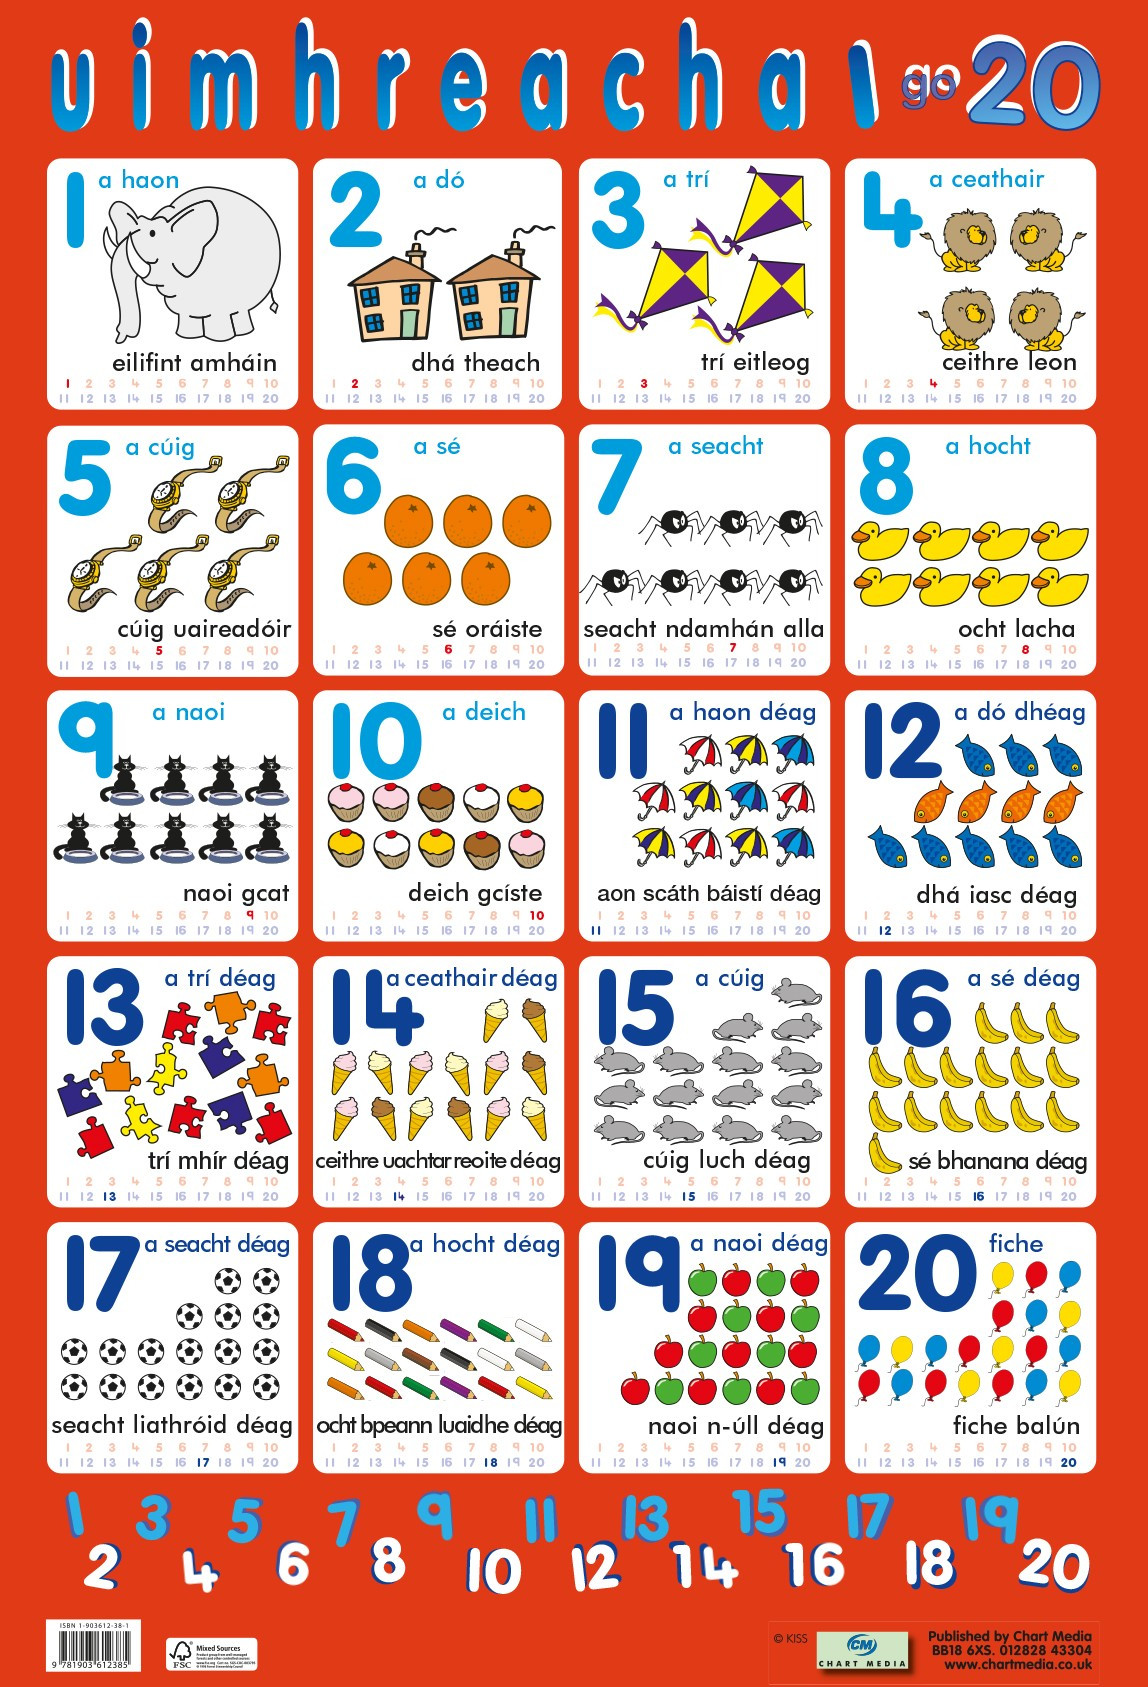 posters uk irish numbers 1 20 wholesale wall posters